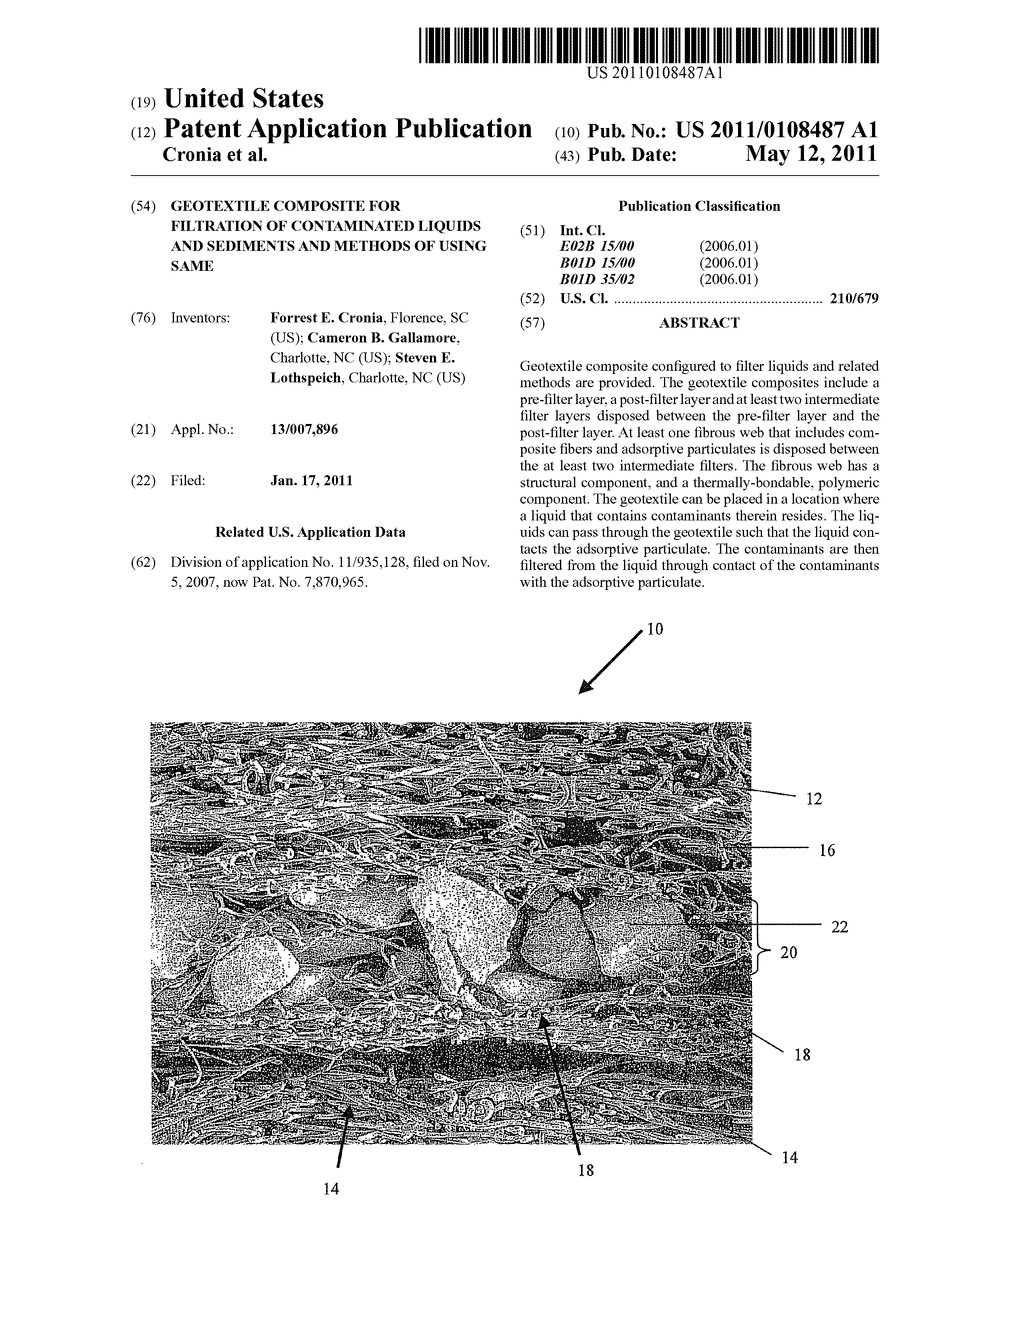 Geotextile composite for filtration of contaminated liquids and sediments and methods of using same - diagram, schematic, and image 01